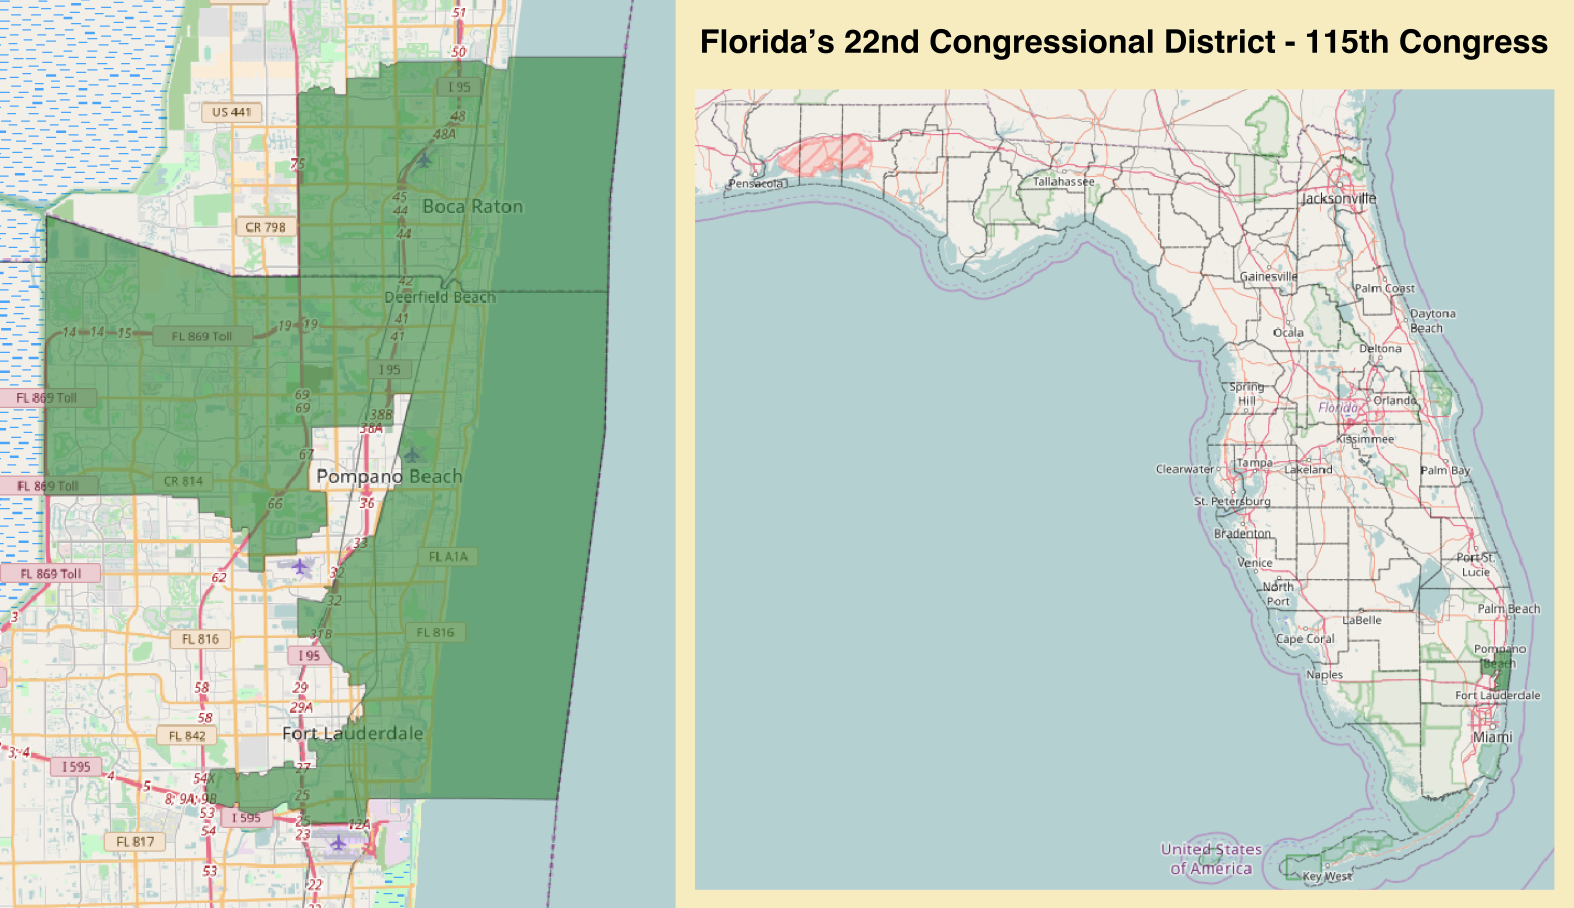 Map Of Florida Showing Boca Raton.Florida S 22nd Congressional District Wikipedia